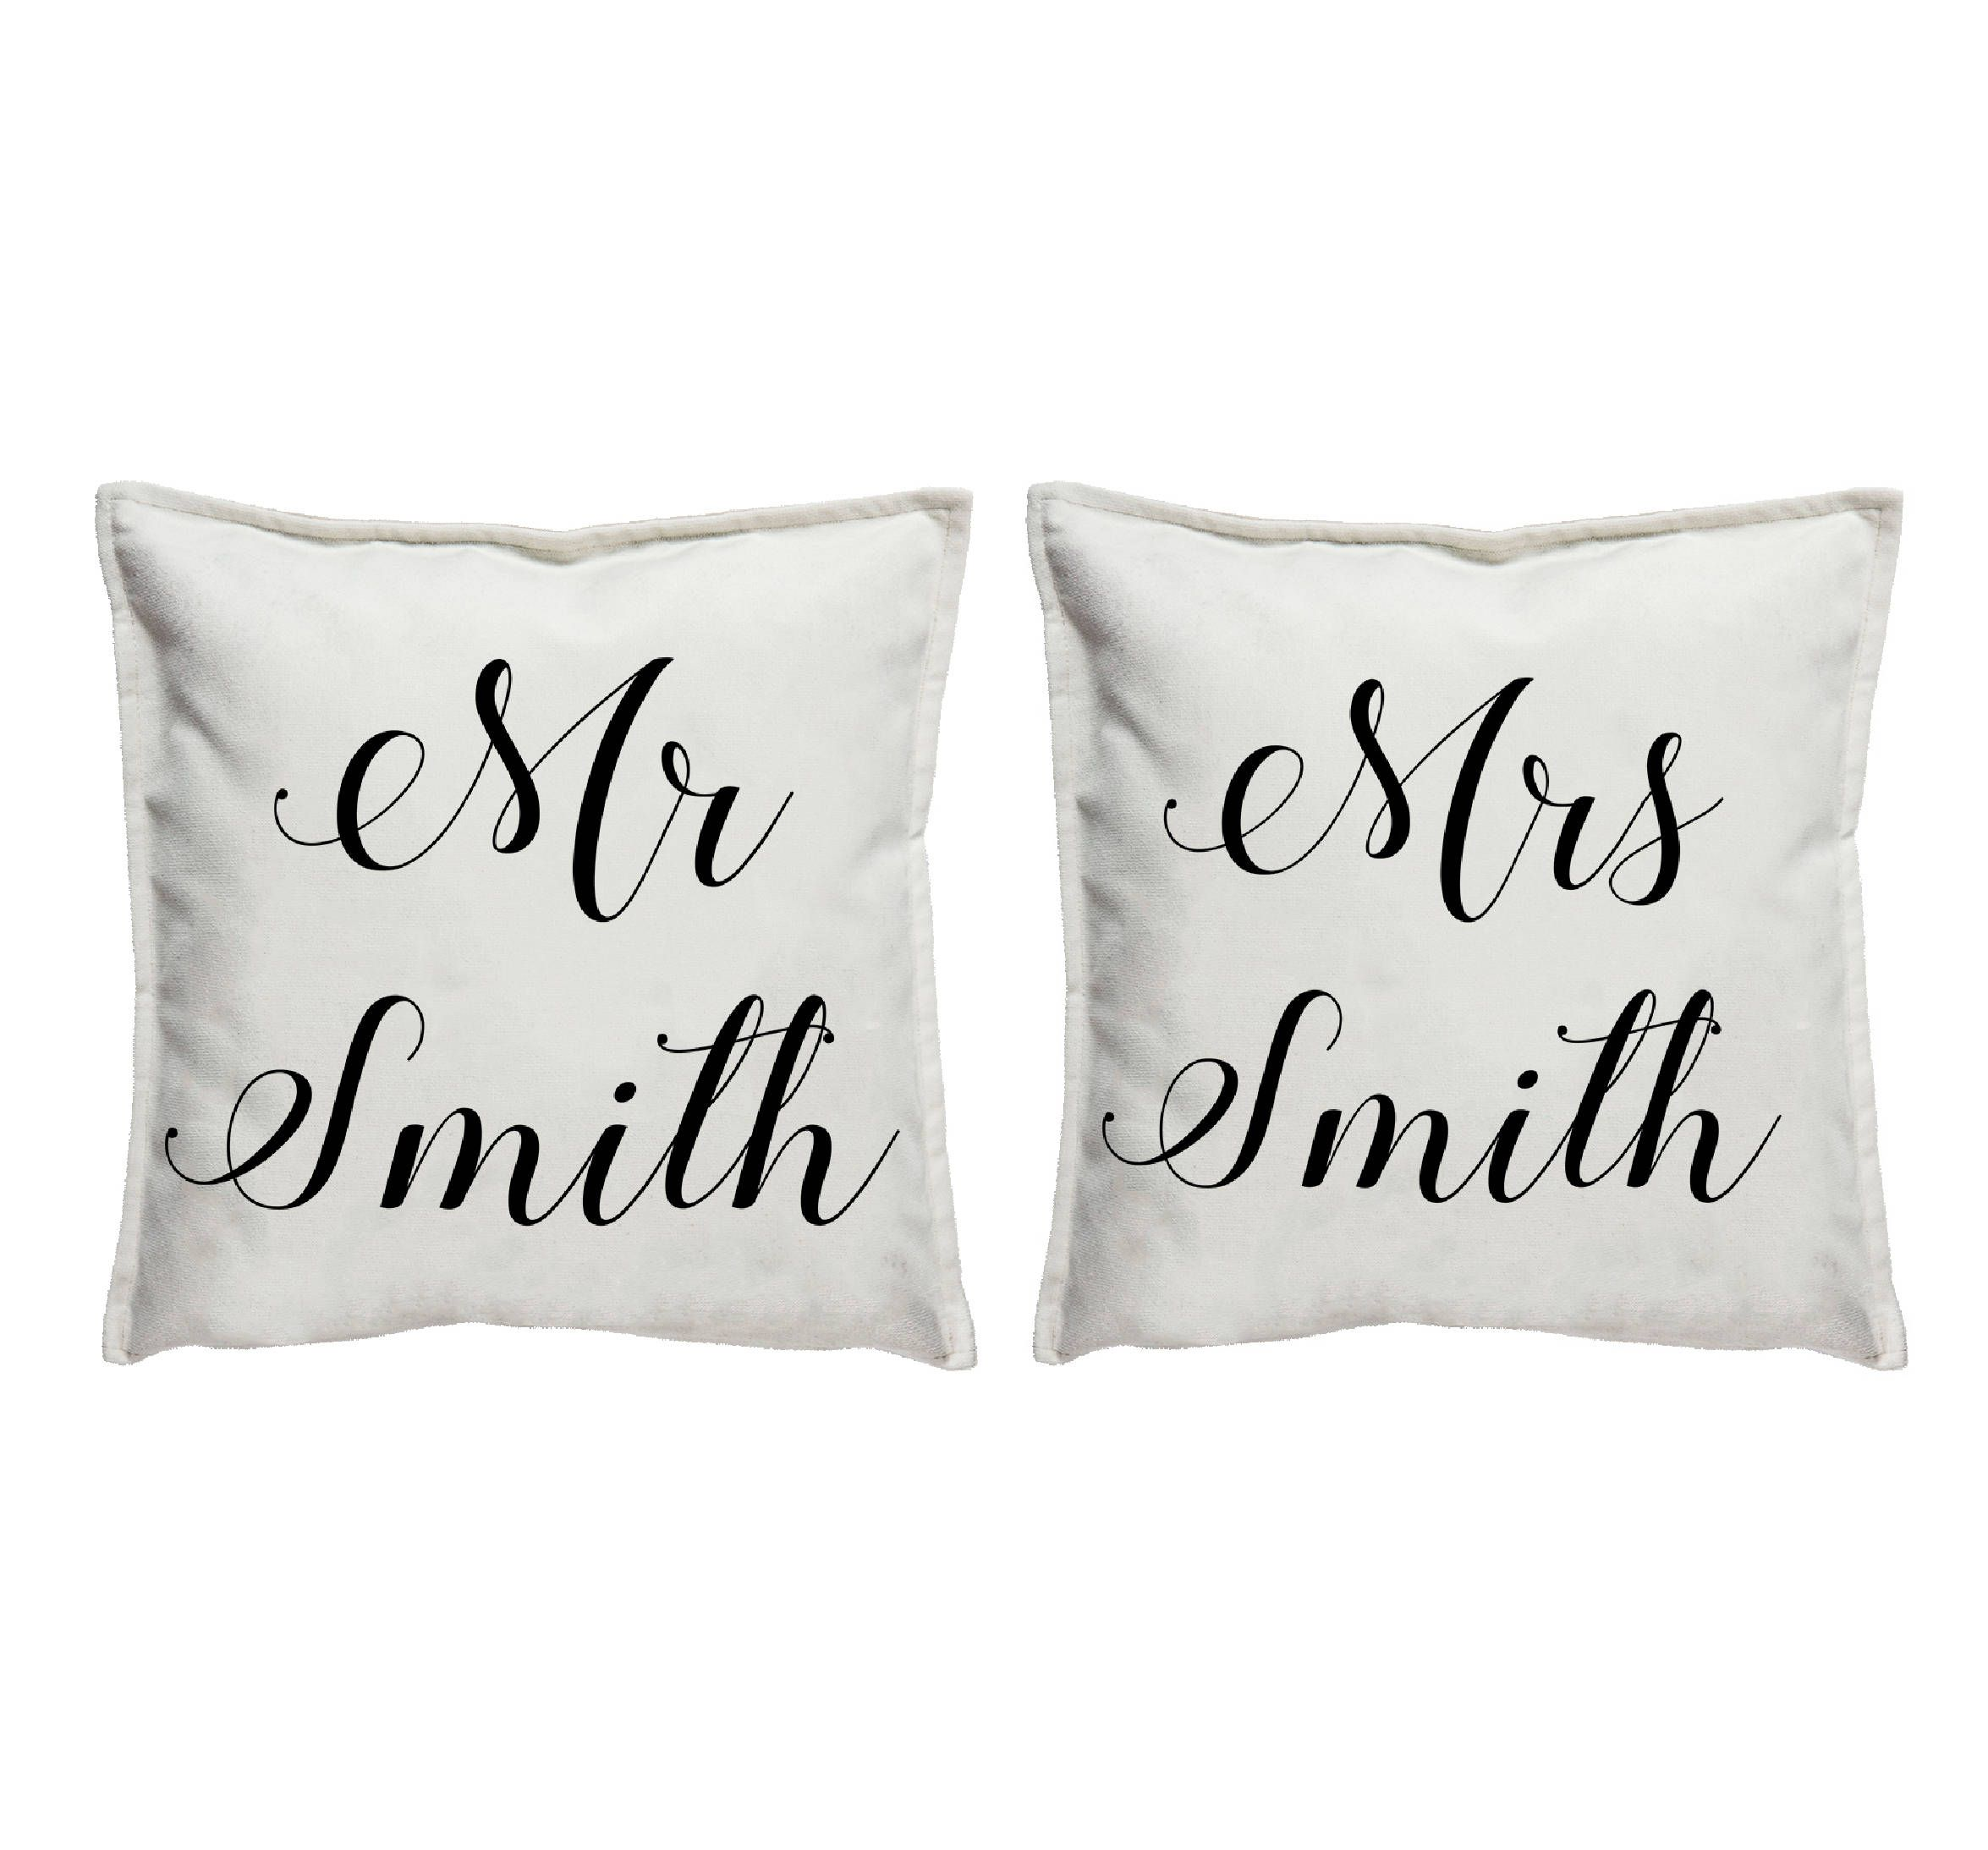 customized pillow personalized gifts walmart cover throw pillows